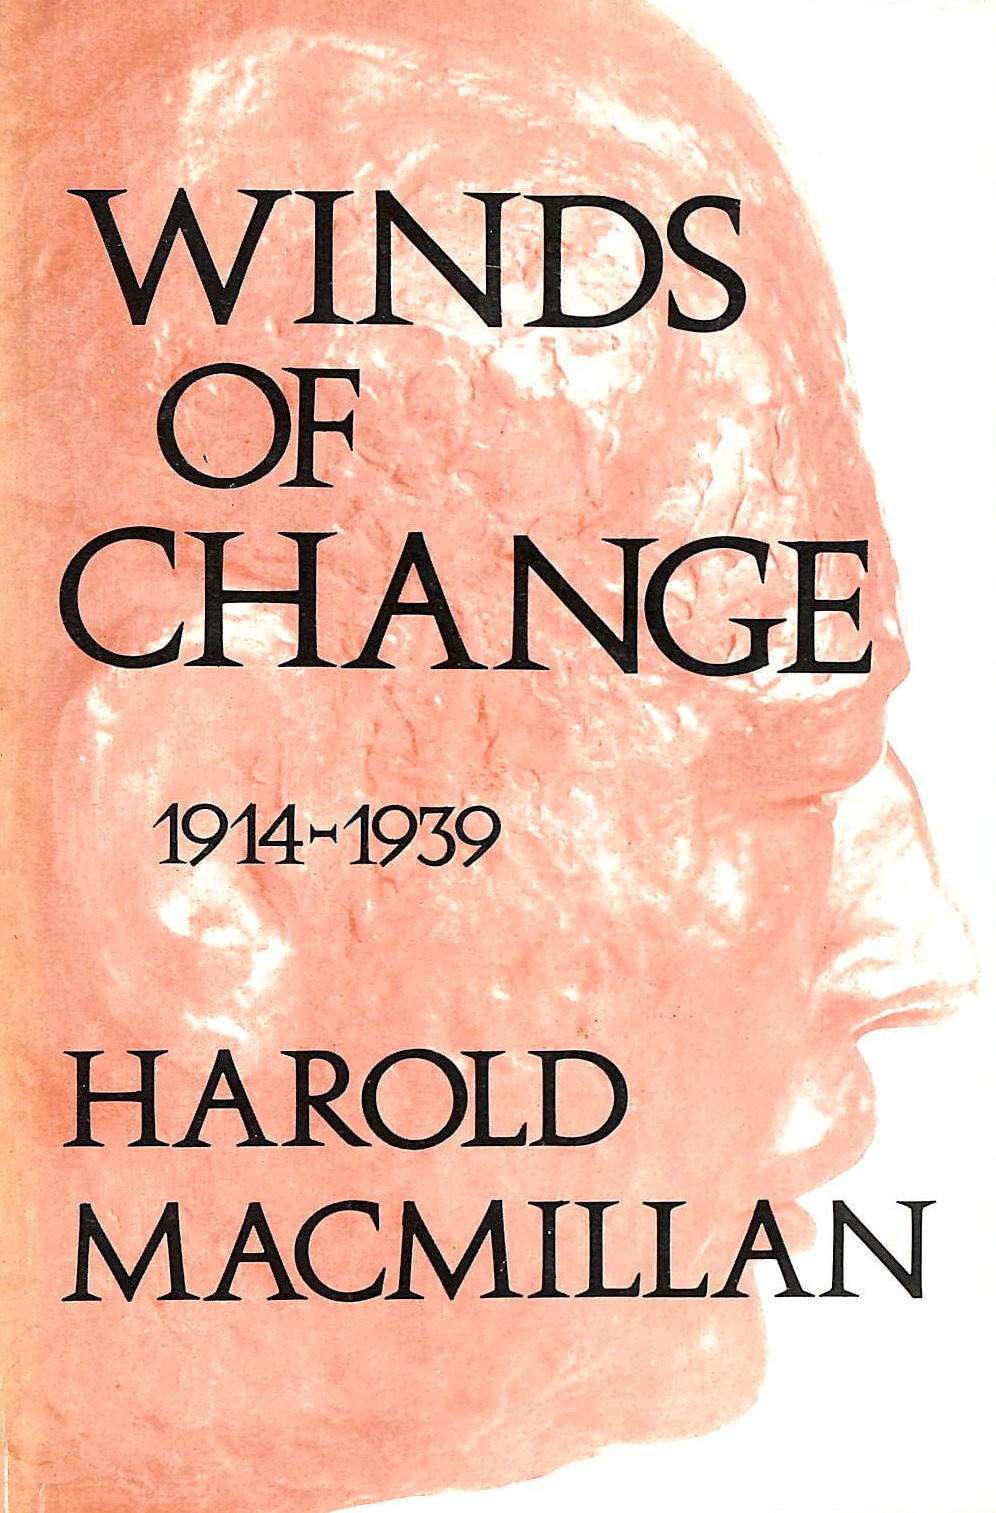 Image for Winds of change,1914-1939